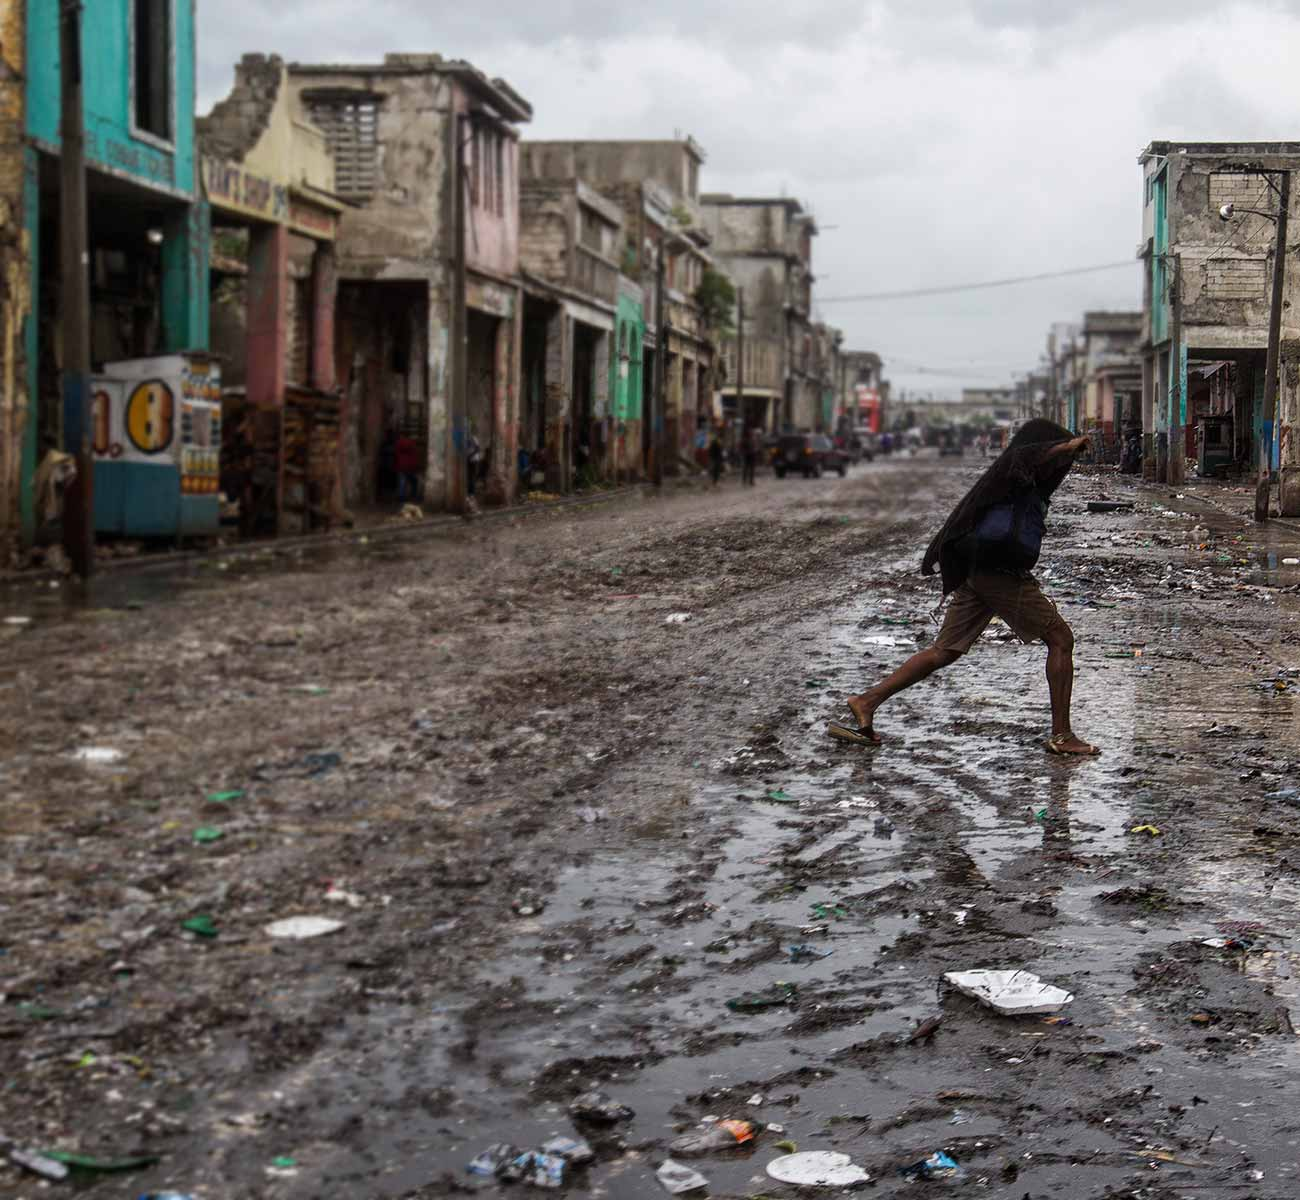 A Haitian boy in slippers crosses an unpaved road littered with mud and debris, and lined with ruined buildings - Donation form background